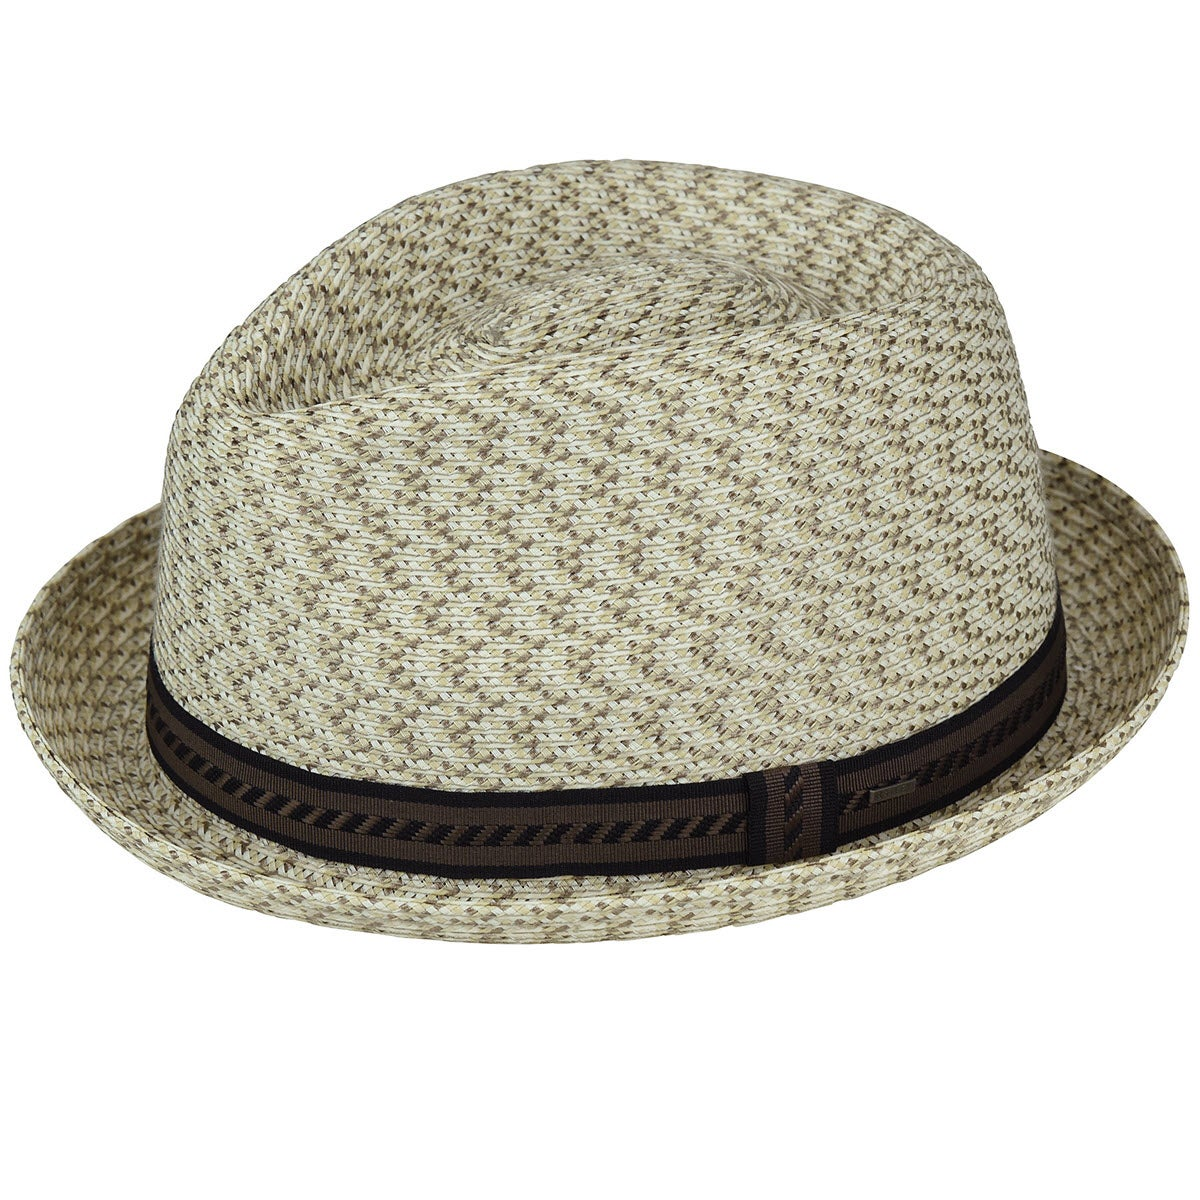 1960s – 70s Style Men's Hats Mannes Braided Trilby $46.20 AT vintagedancer.com